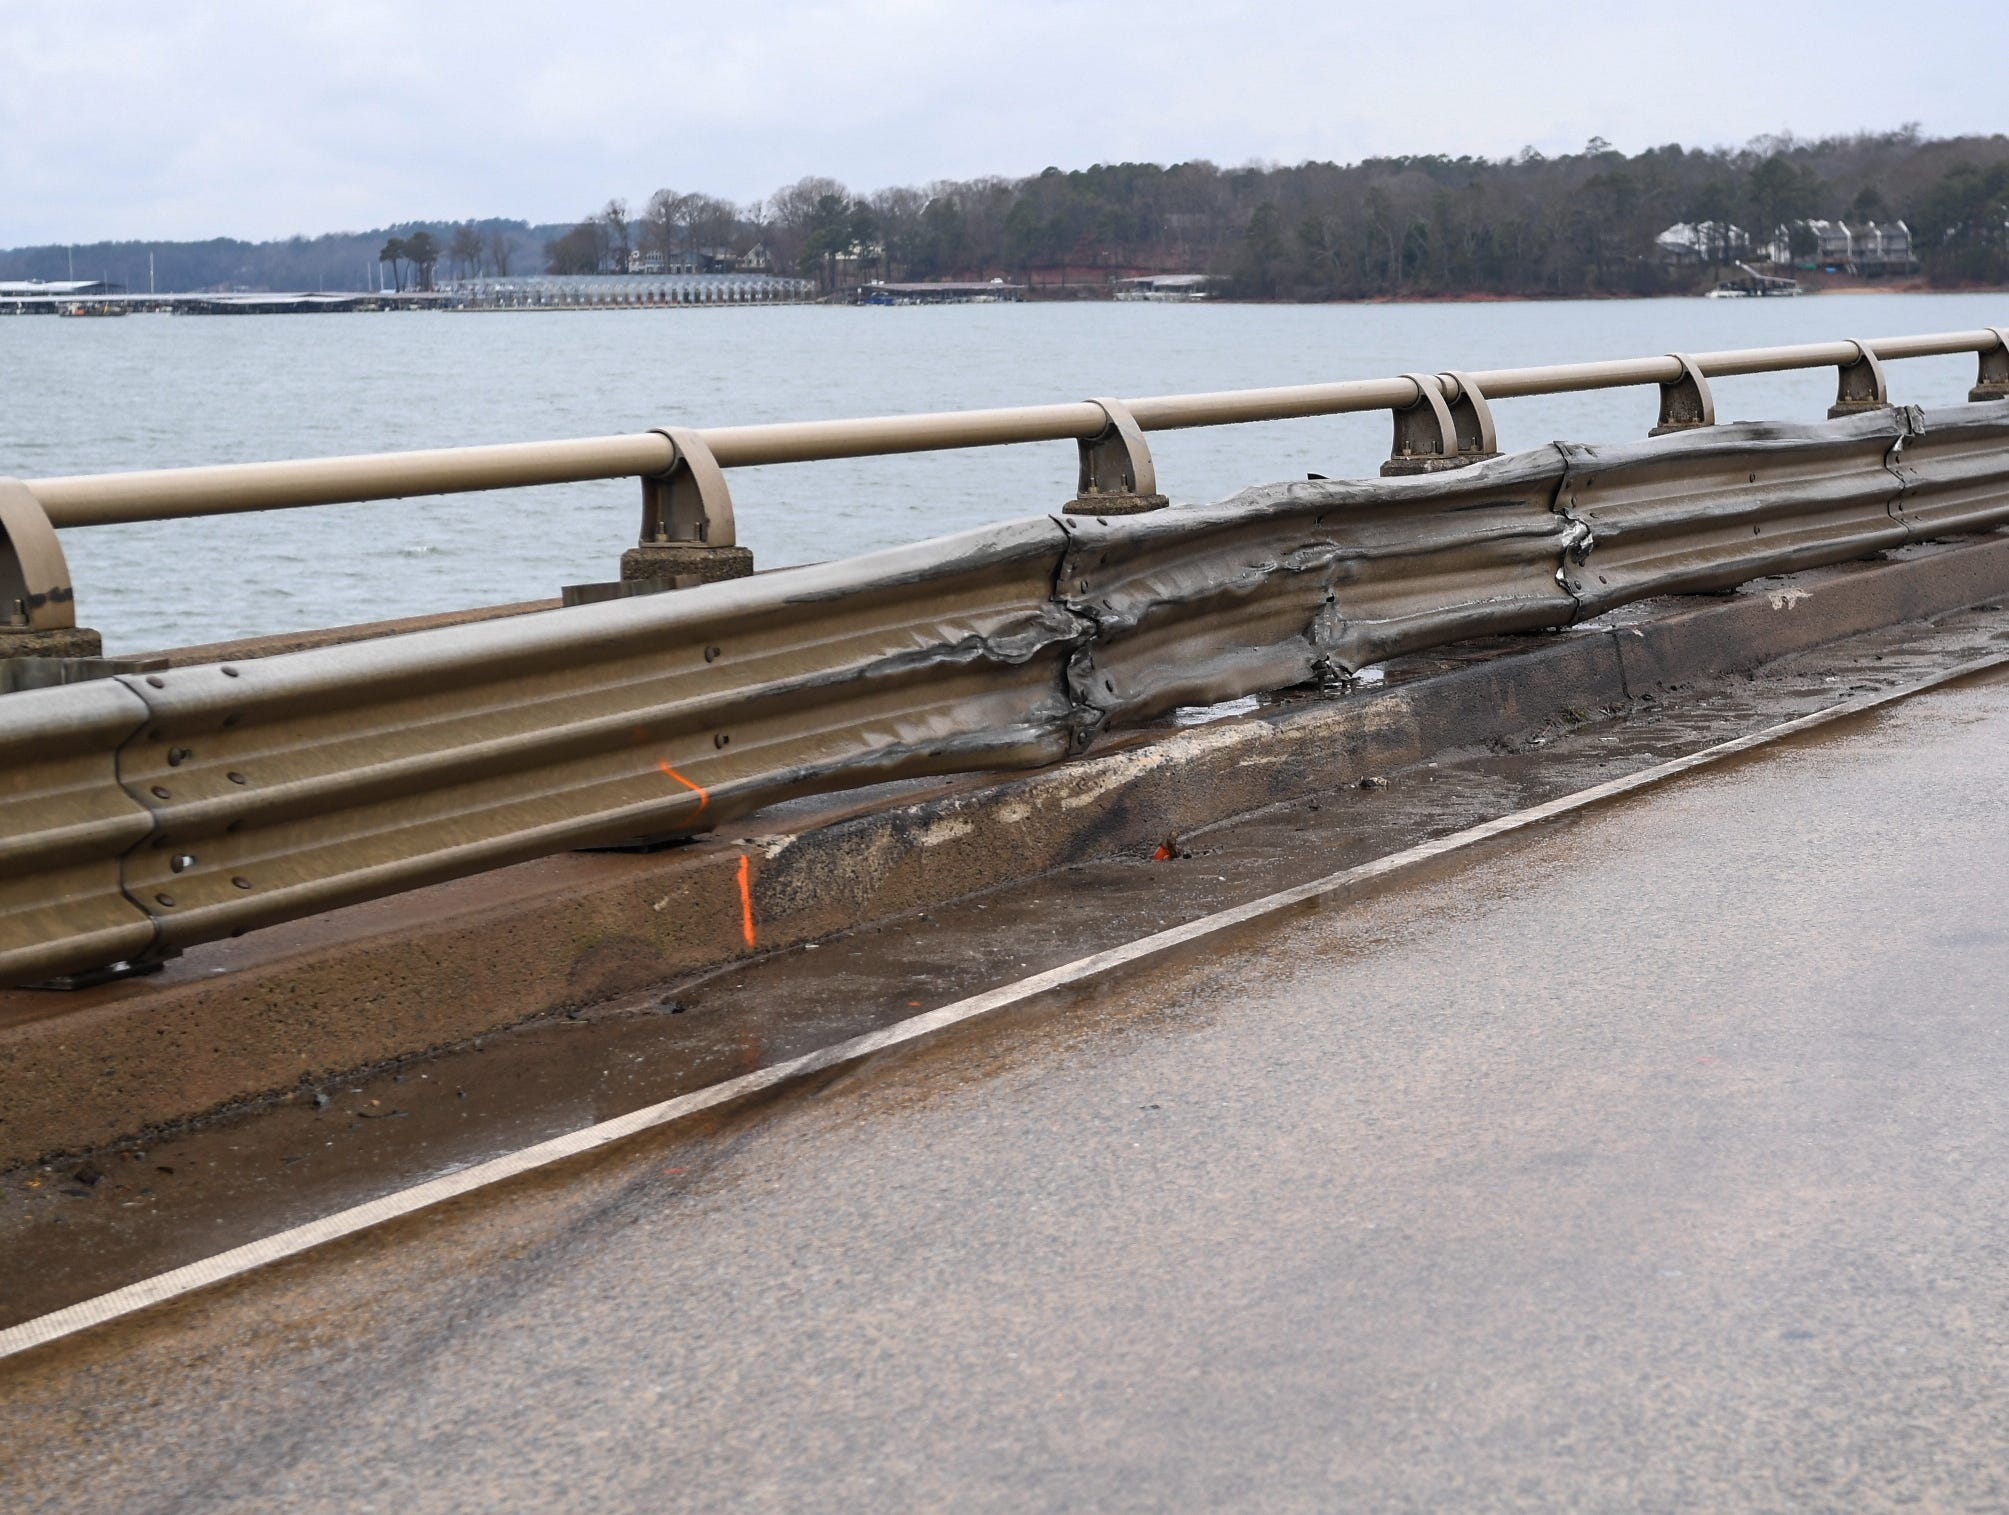 A bridge on state highway 24 over Lake Hartwell, the site of an accident with a tractor-trailer carrying chickens and a grey sedan on Monday, is open with some damage to the guard rail Tuesday.